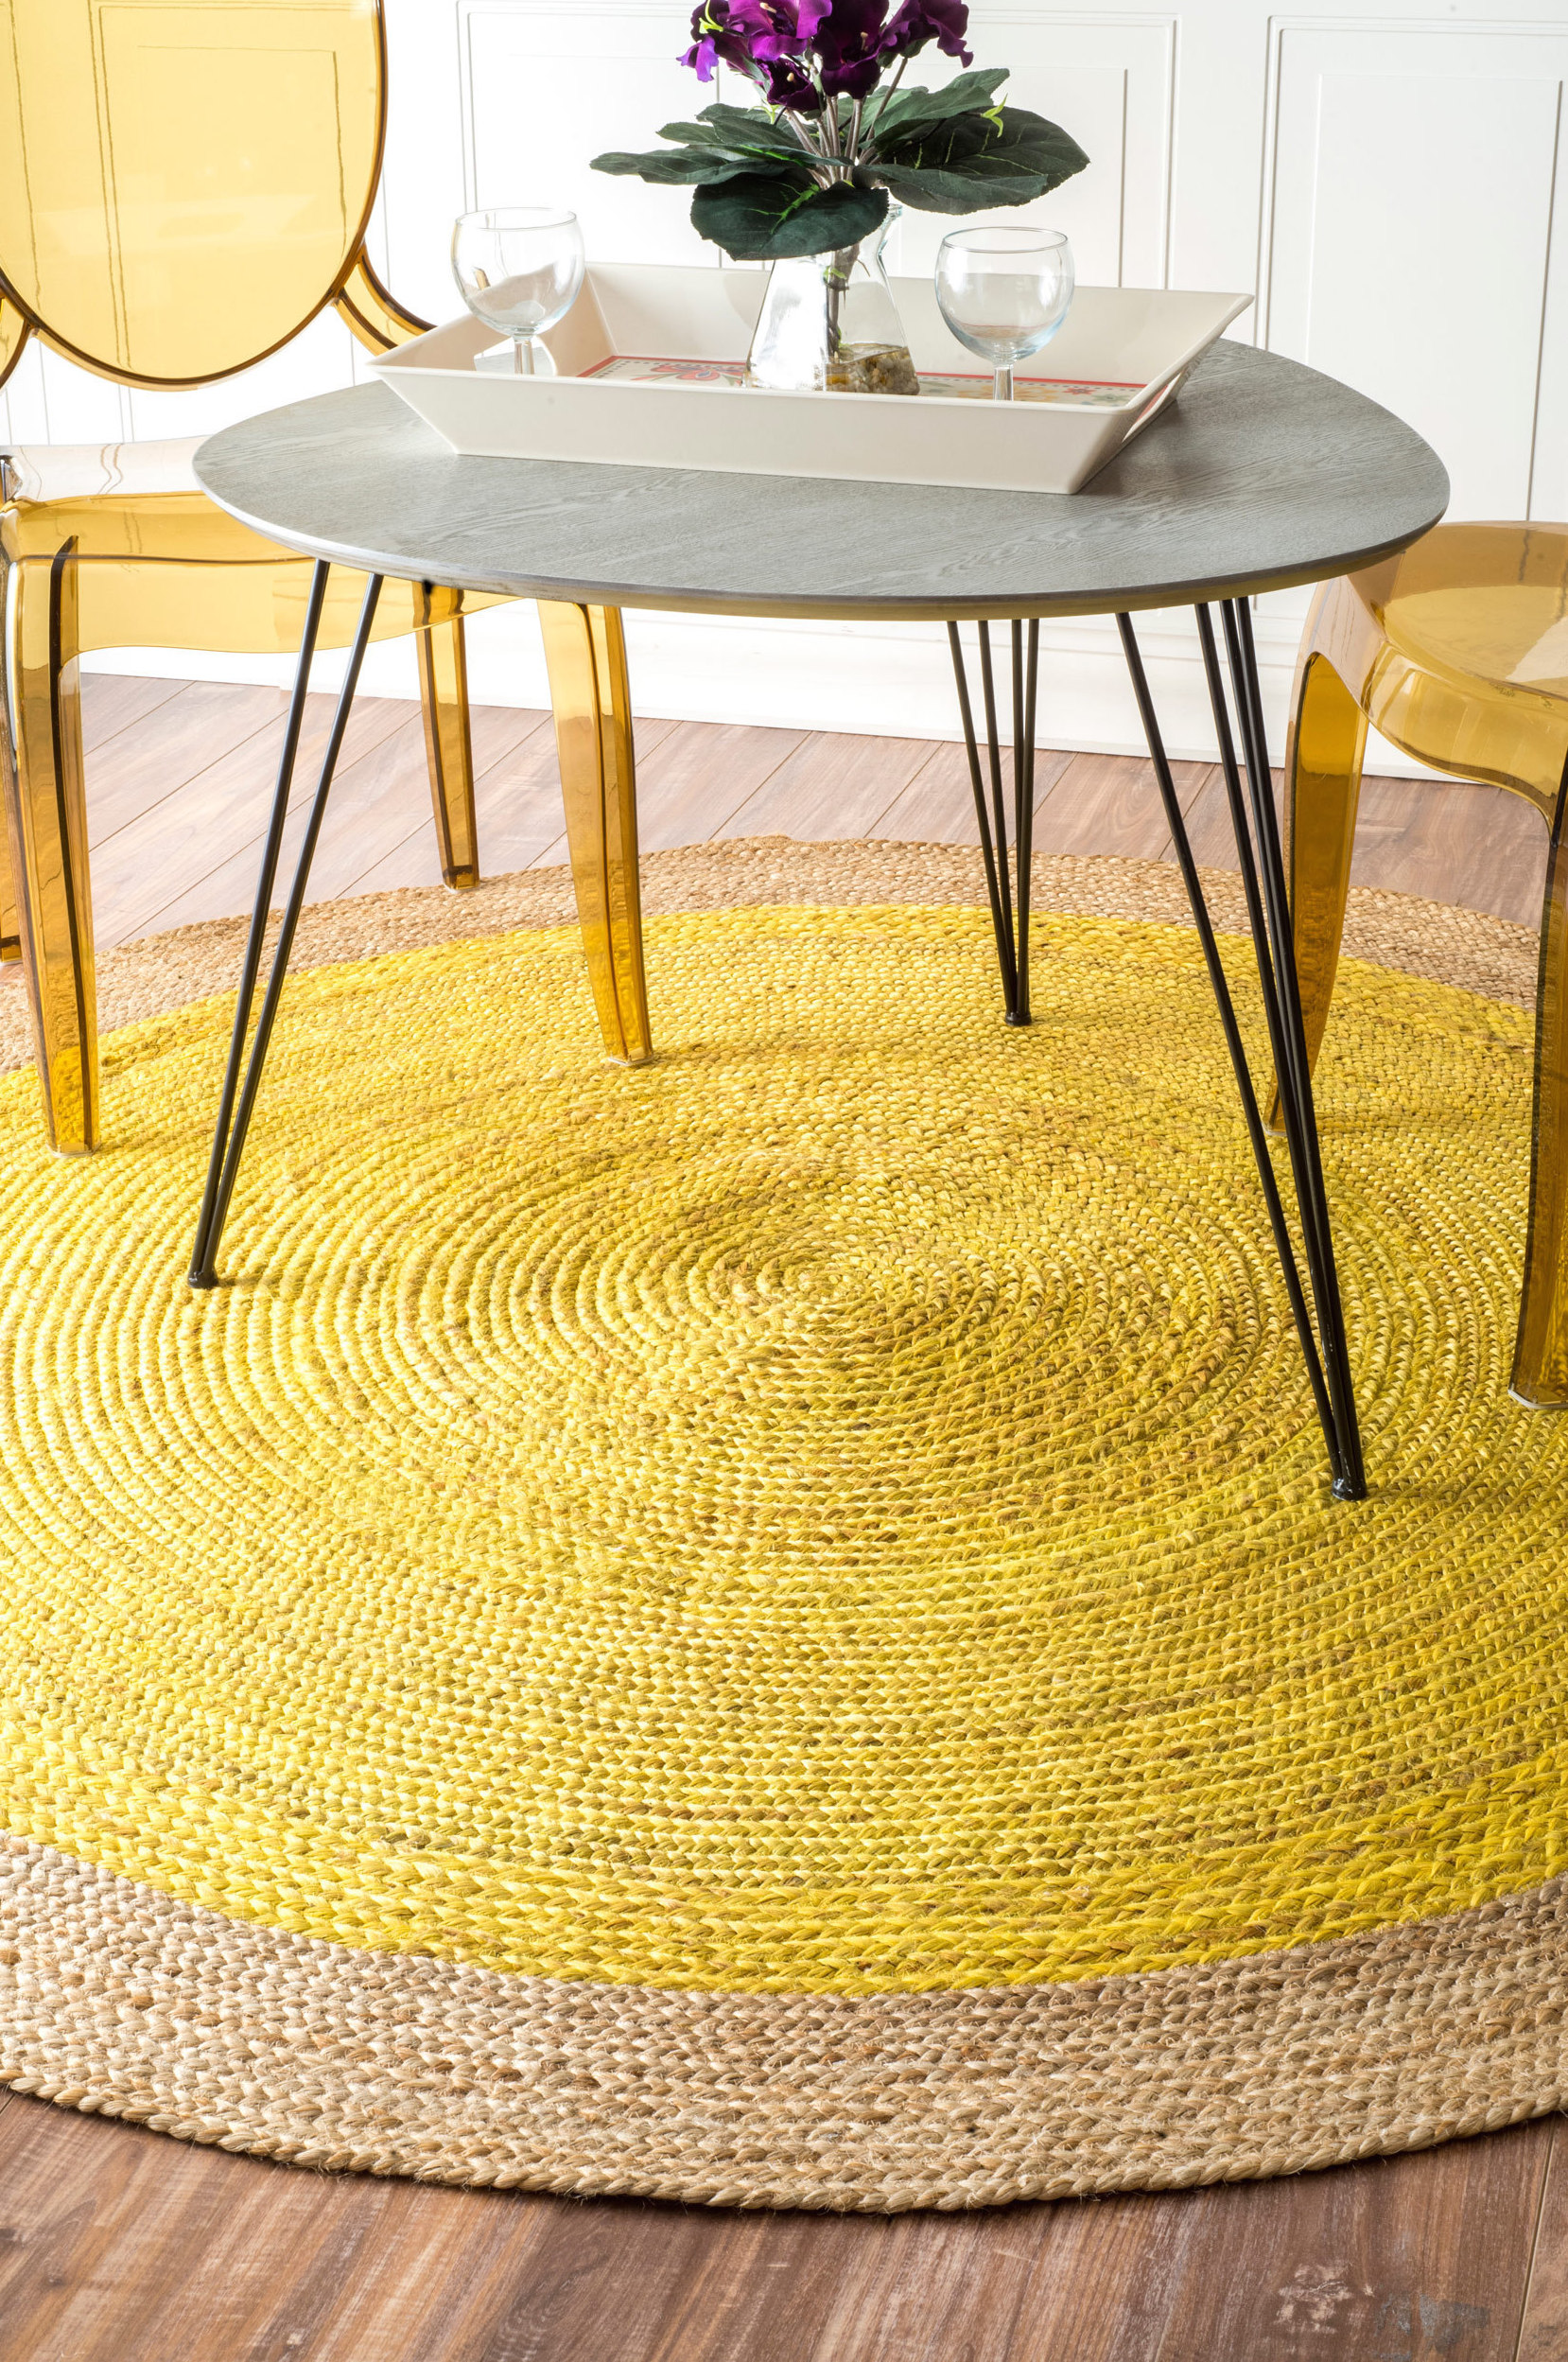 Teppich Rund Flur 25 Yellow Rug And Carpet Ideas To Brighten Up Any Room